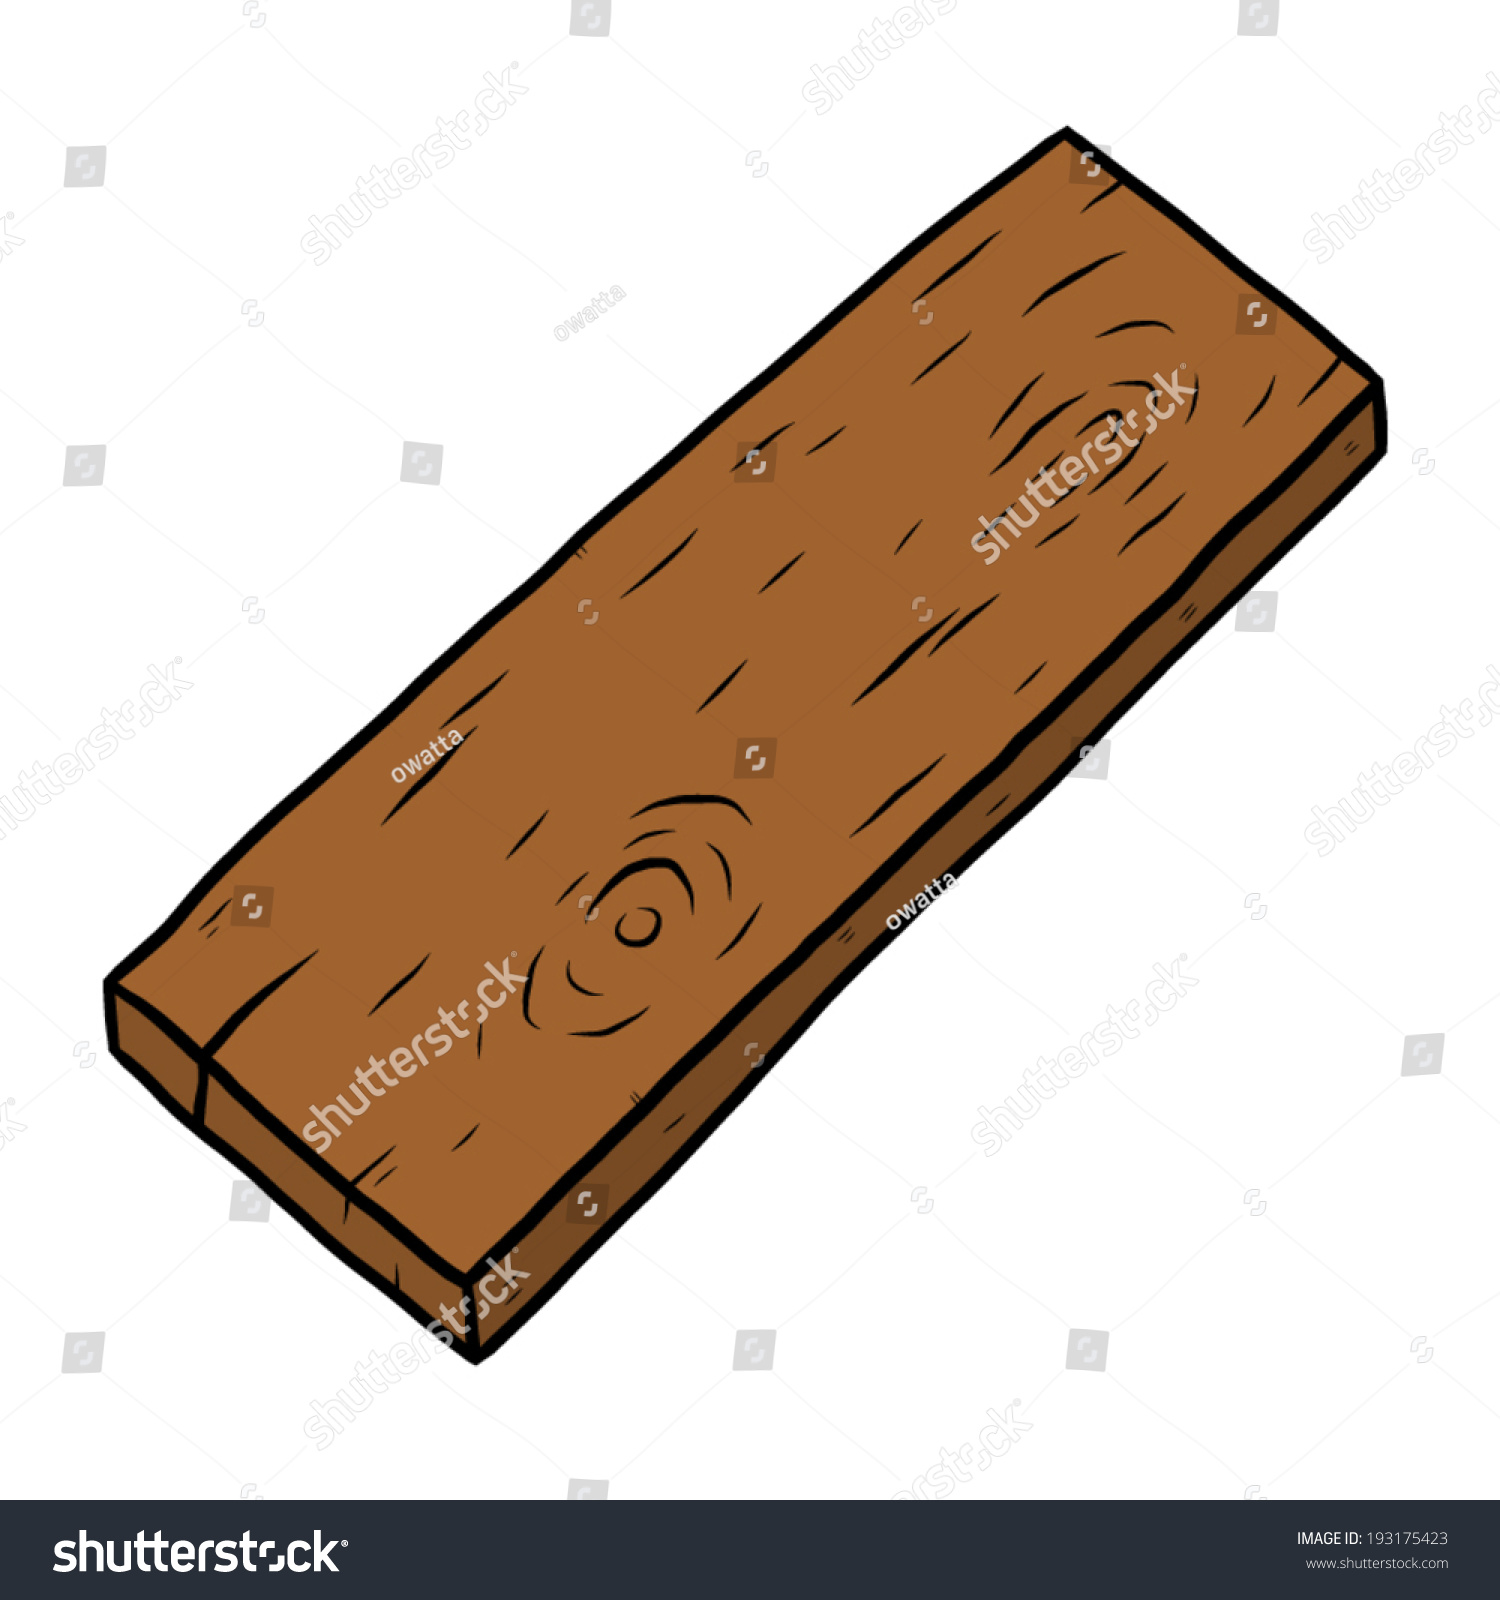 Wooden Plank Cartoon ~ Wooden plank cartoon vector illustration hand stock